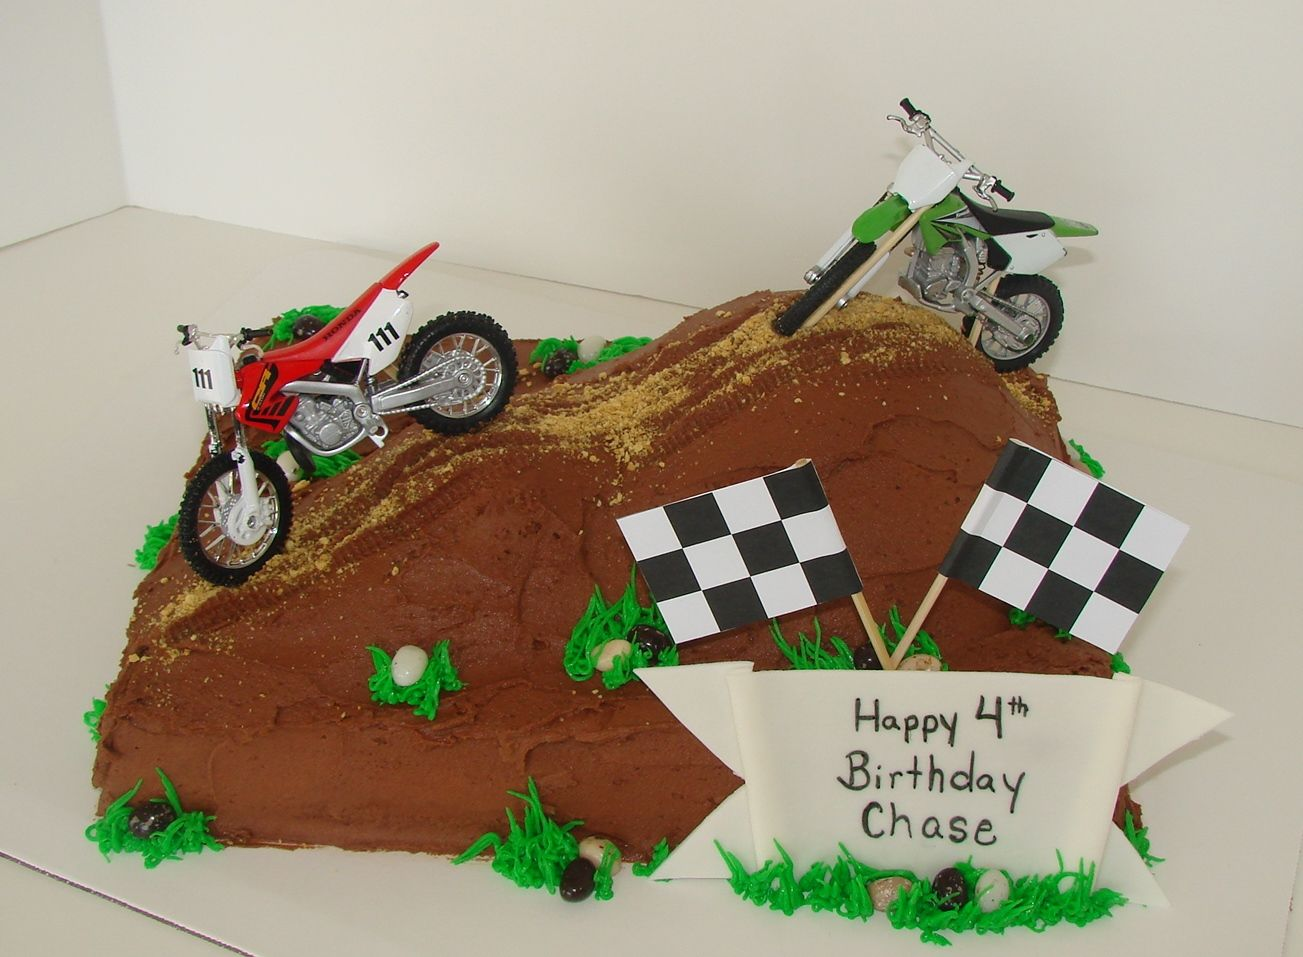 Groovy Dirt Bike Birthday Cake With Images Dirt Bike Cakes Funny Birthday Cards Online Inifofree Goldxyz